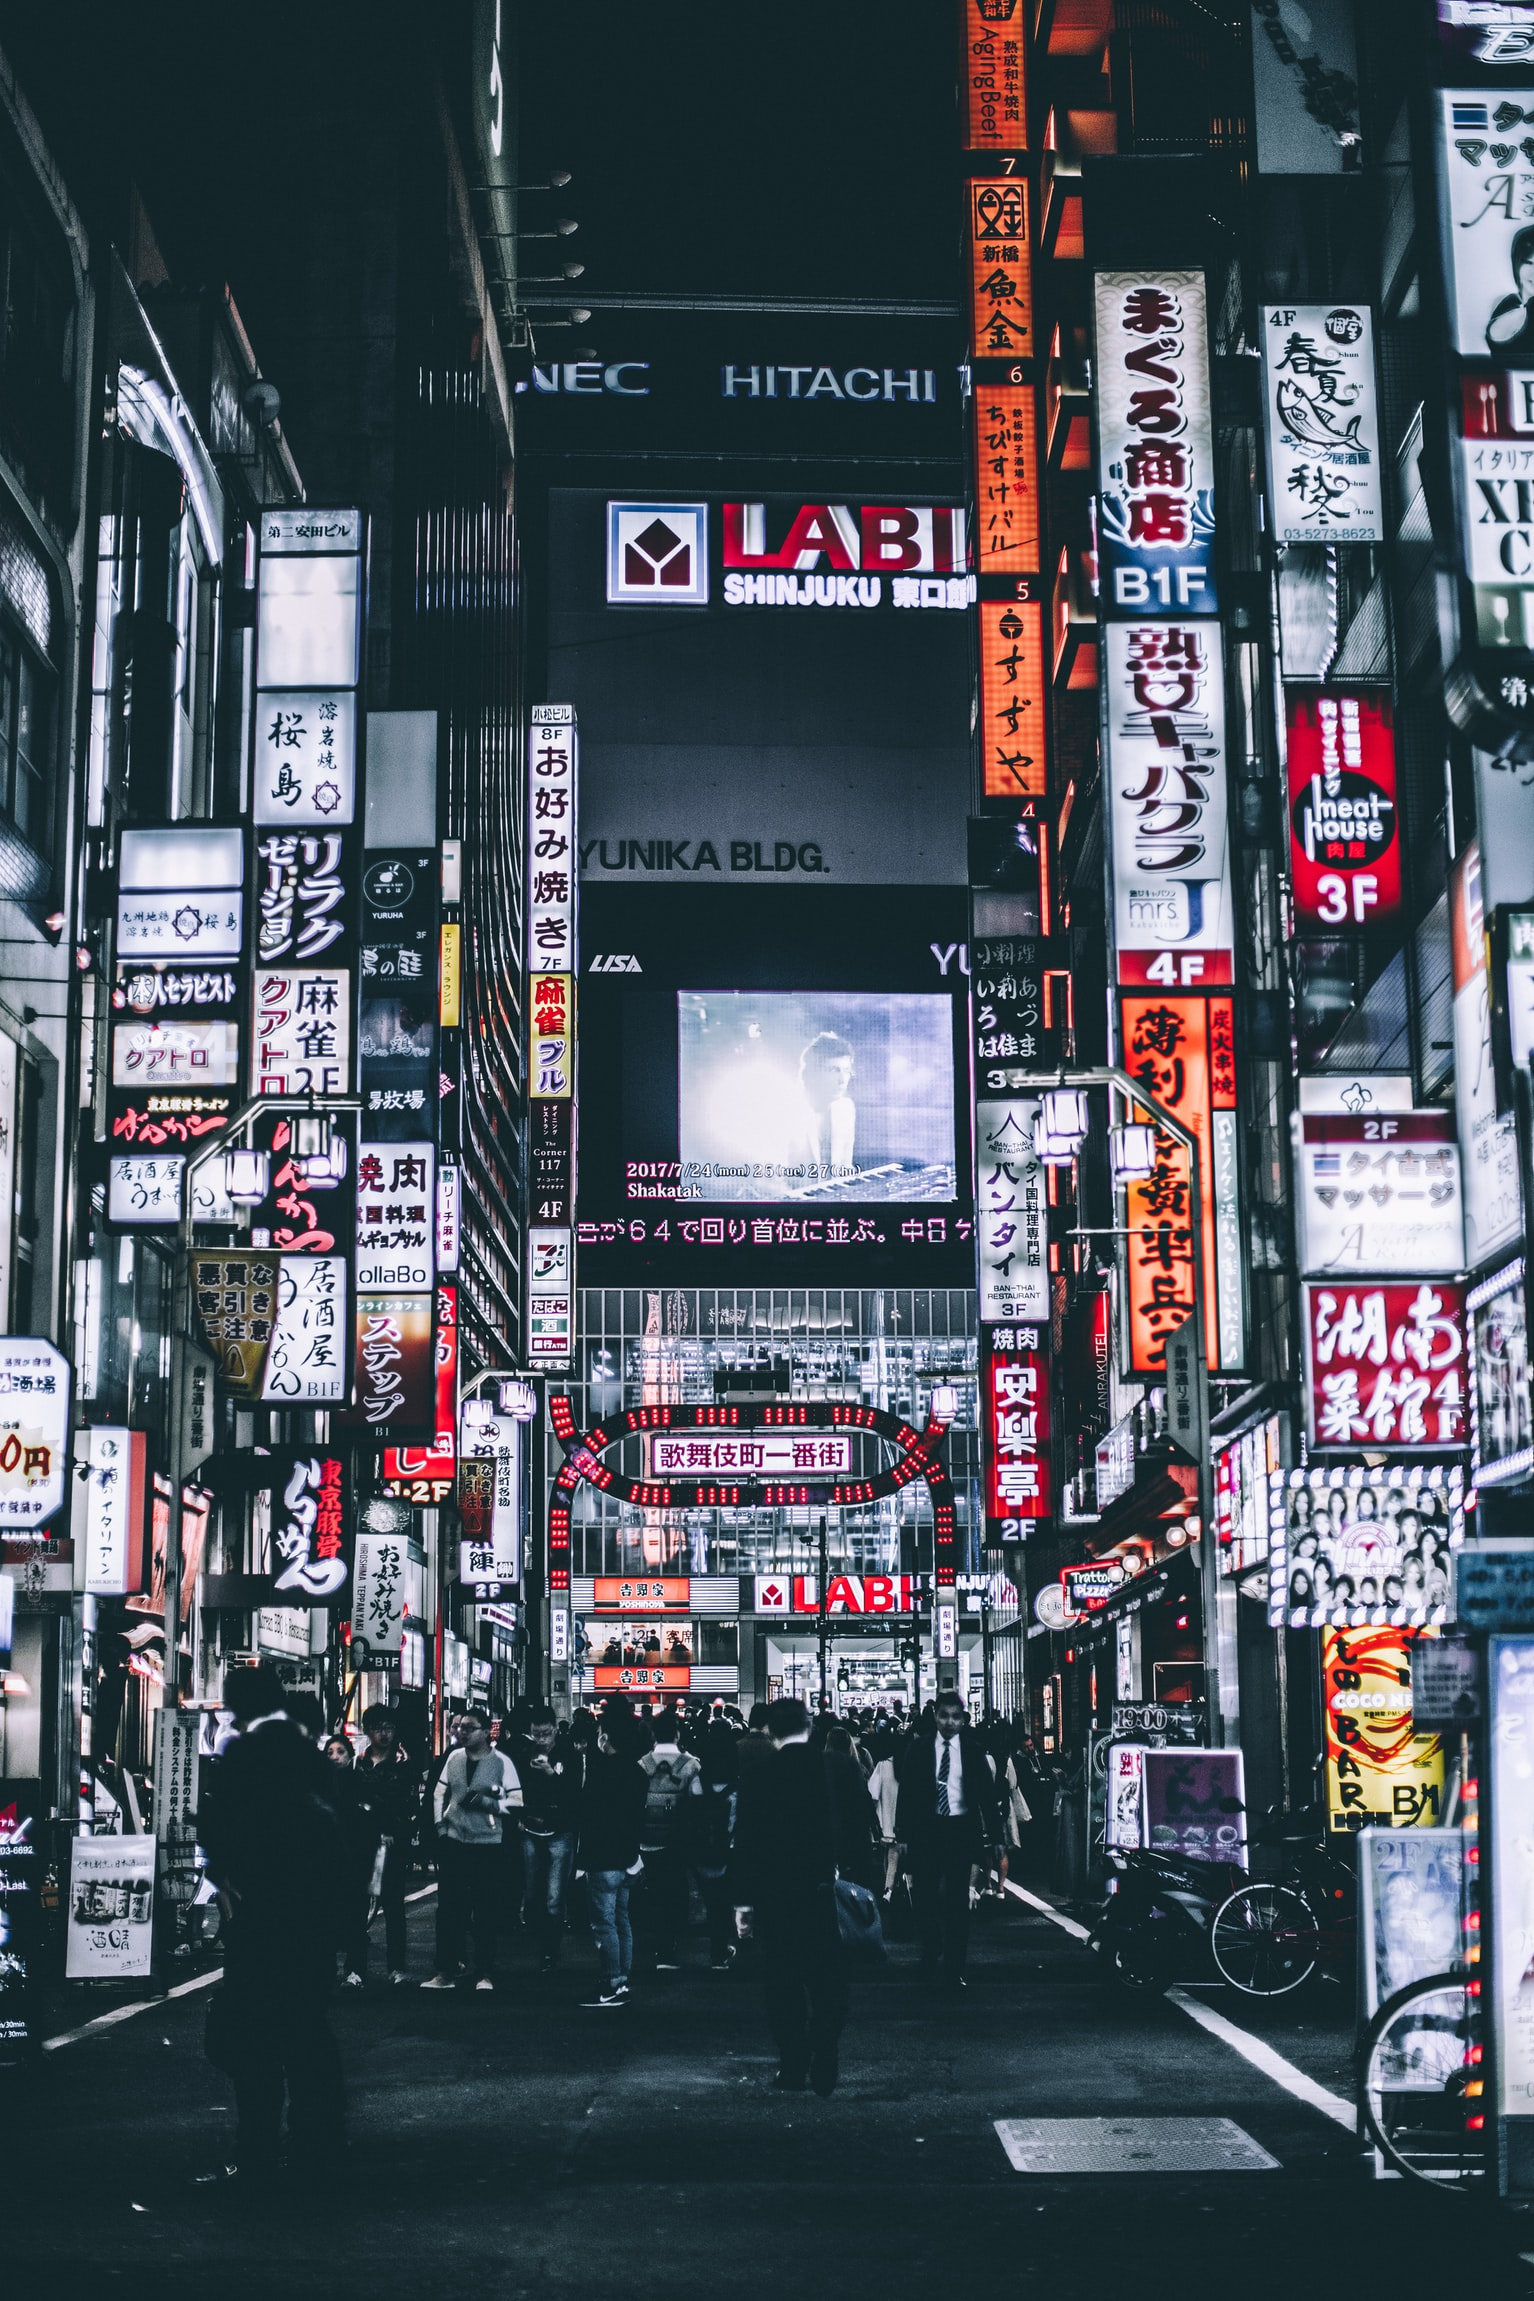 Japan real estate financial planning low-risk investment many companies which might have stocks, which are part of asset allocation